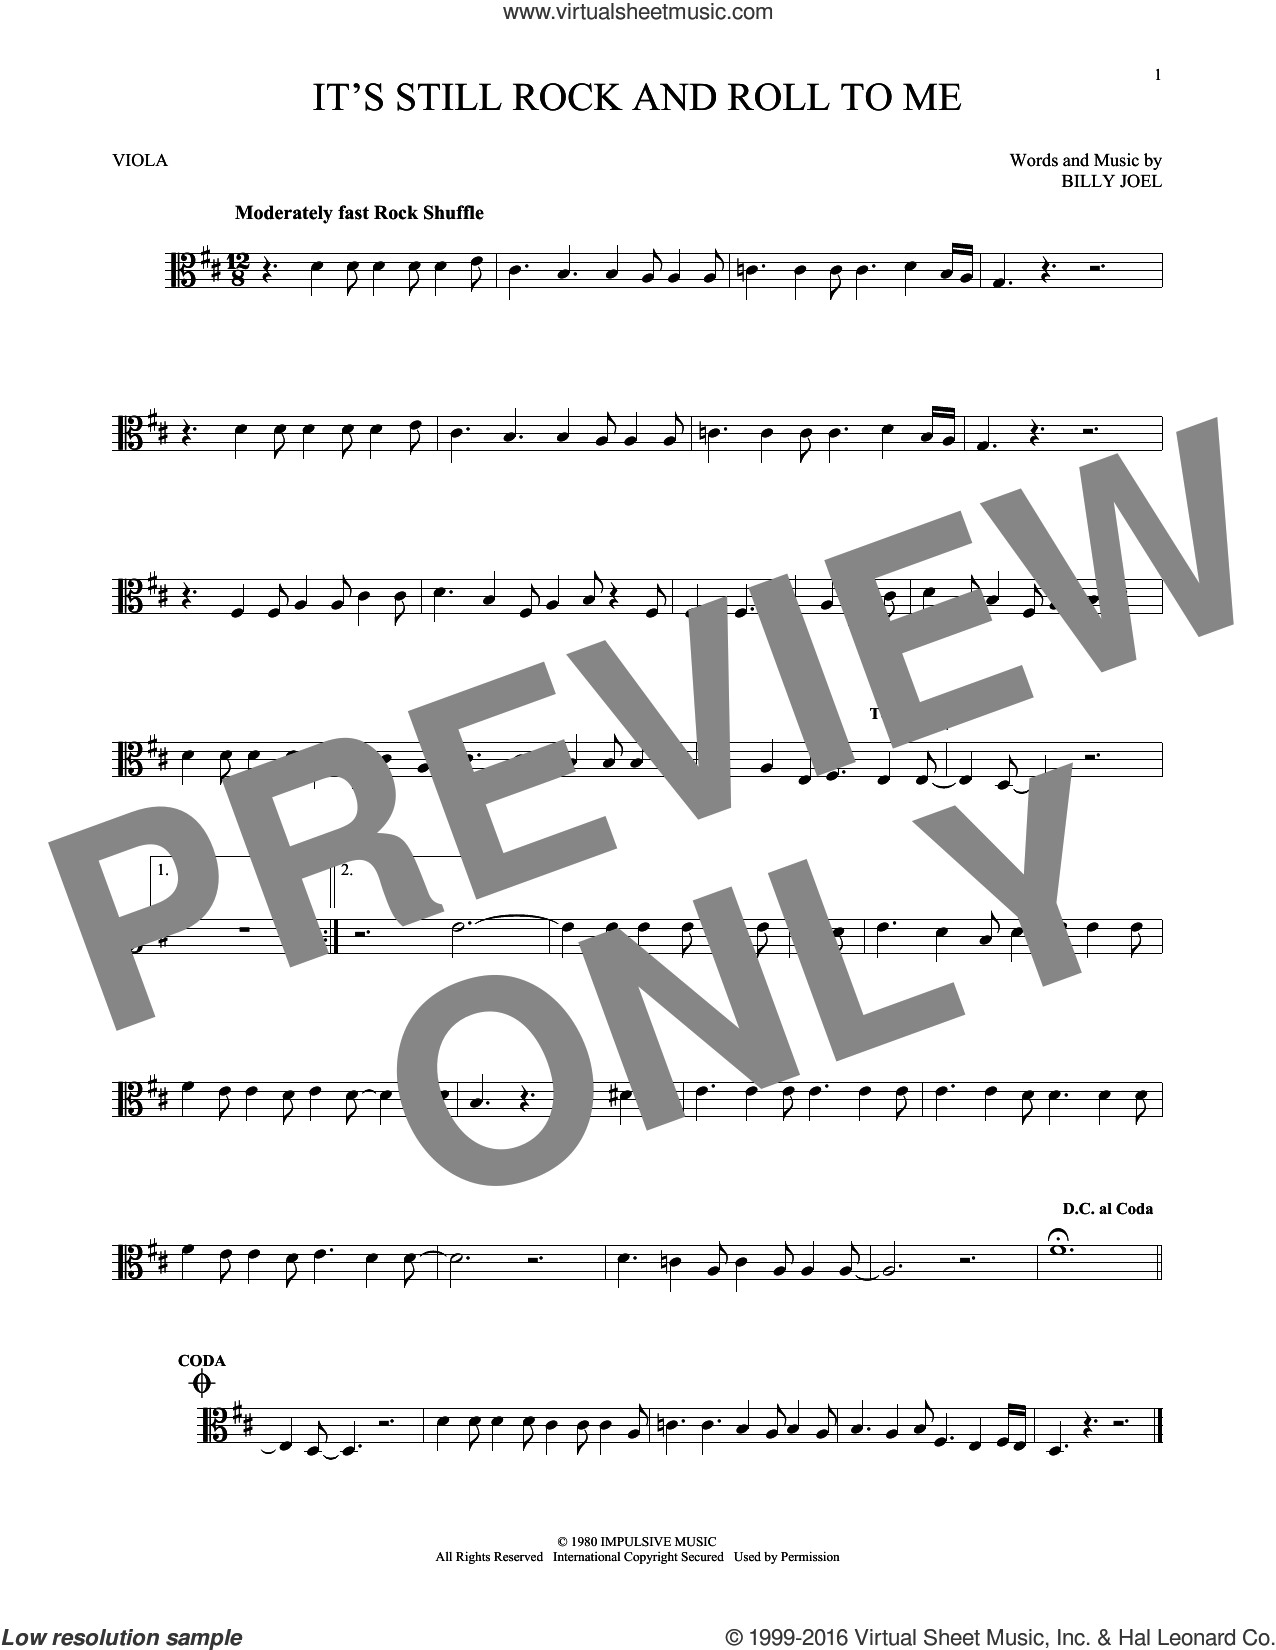 It's Still Rock And Roll To Me sheet music for viola solo by Billy Joel, intermediate skill level